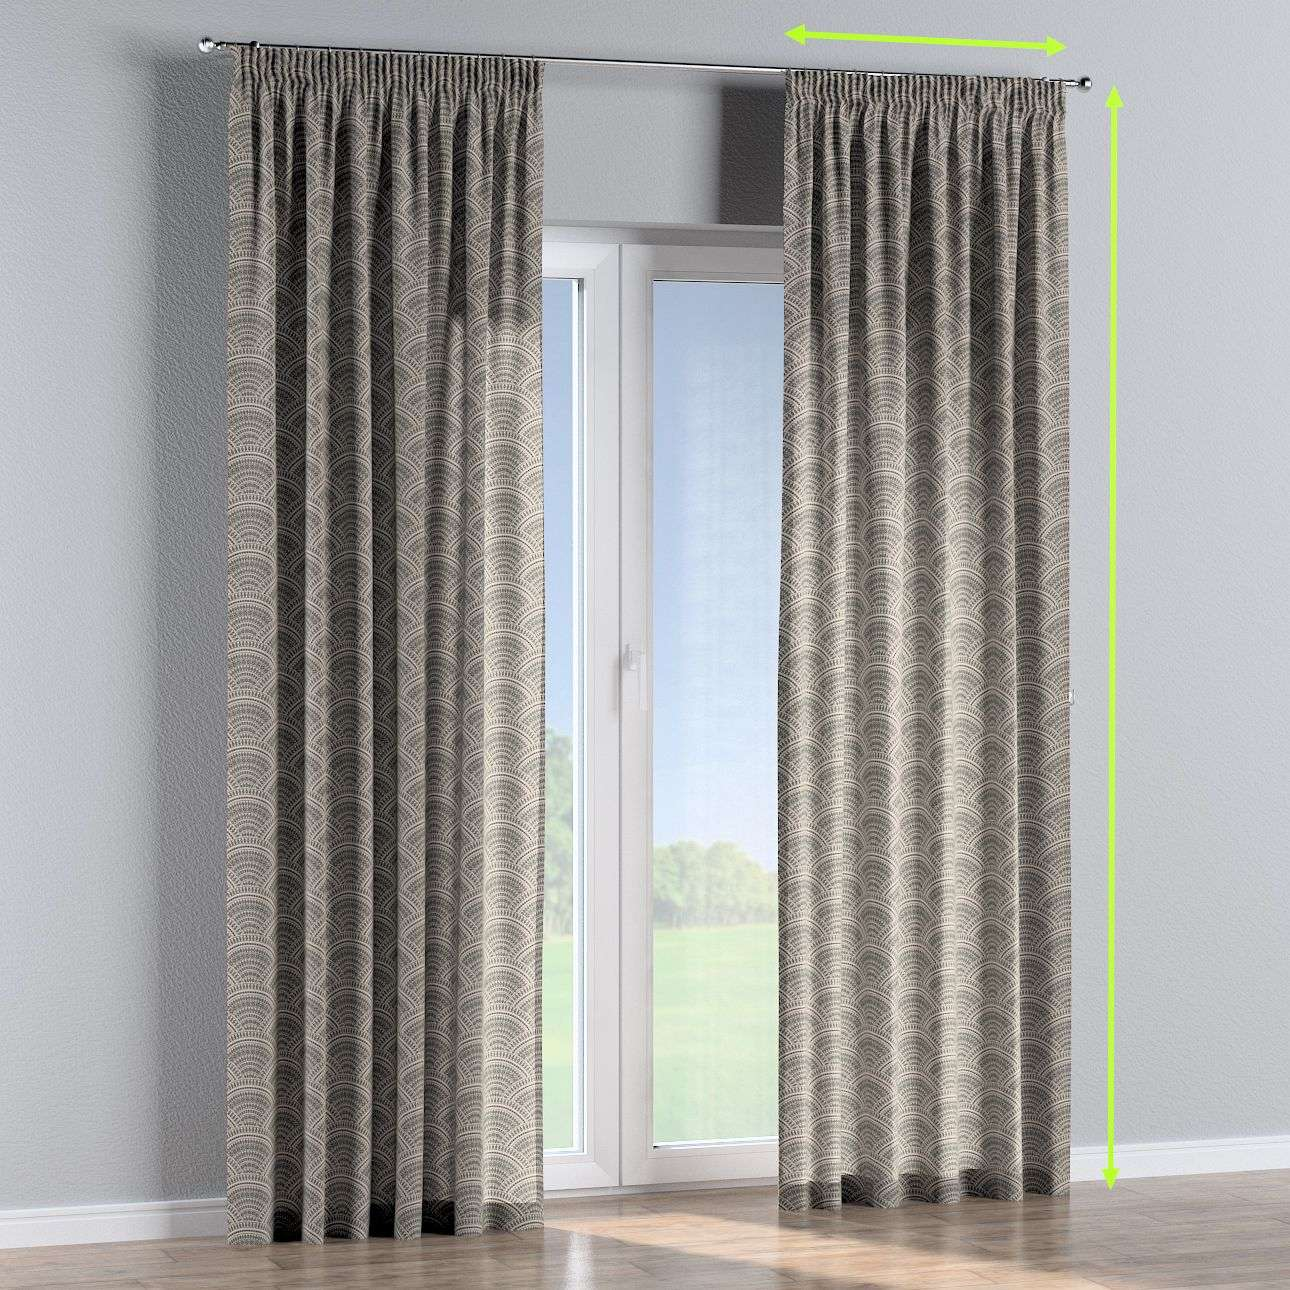 Pencil pleat curtains in collection Comic Book & Geo Prints, fabric: 141-19